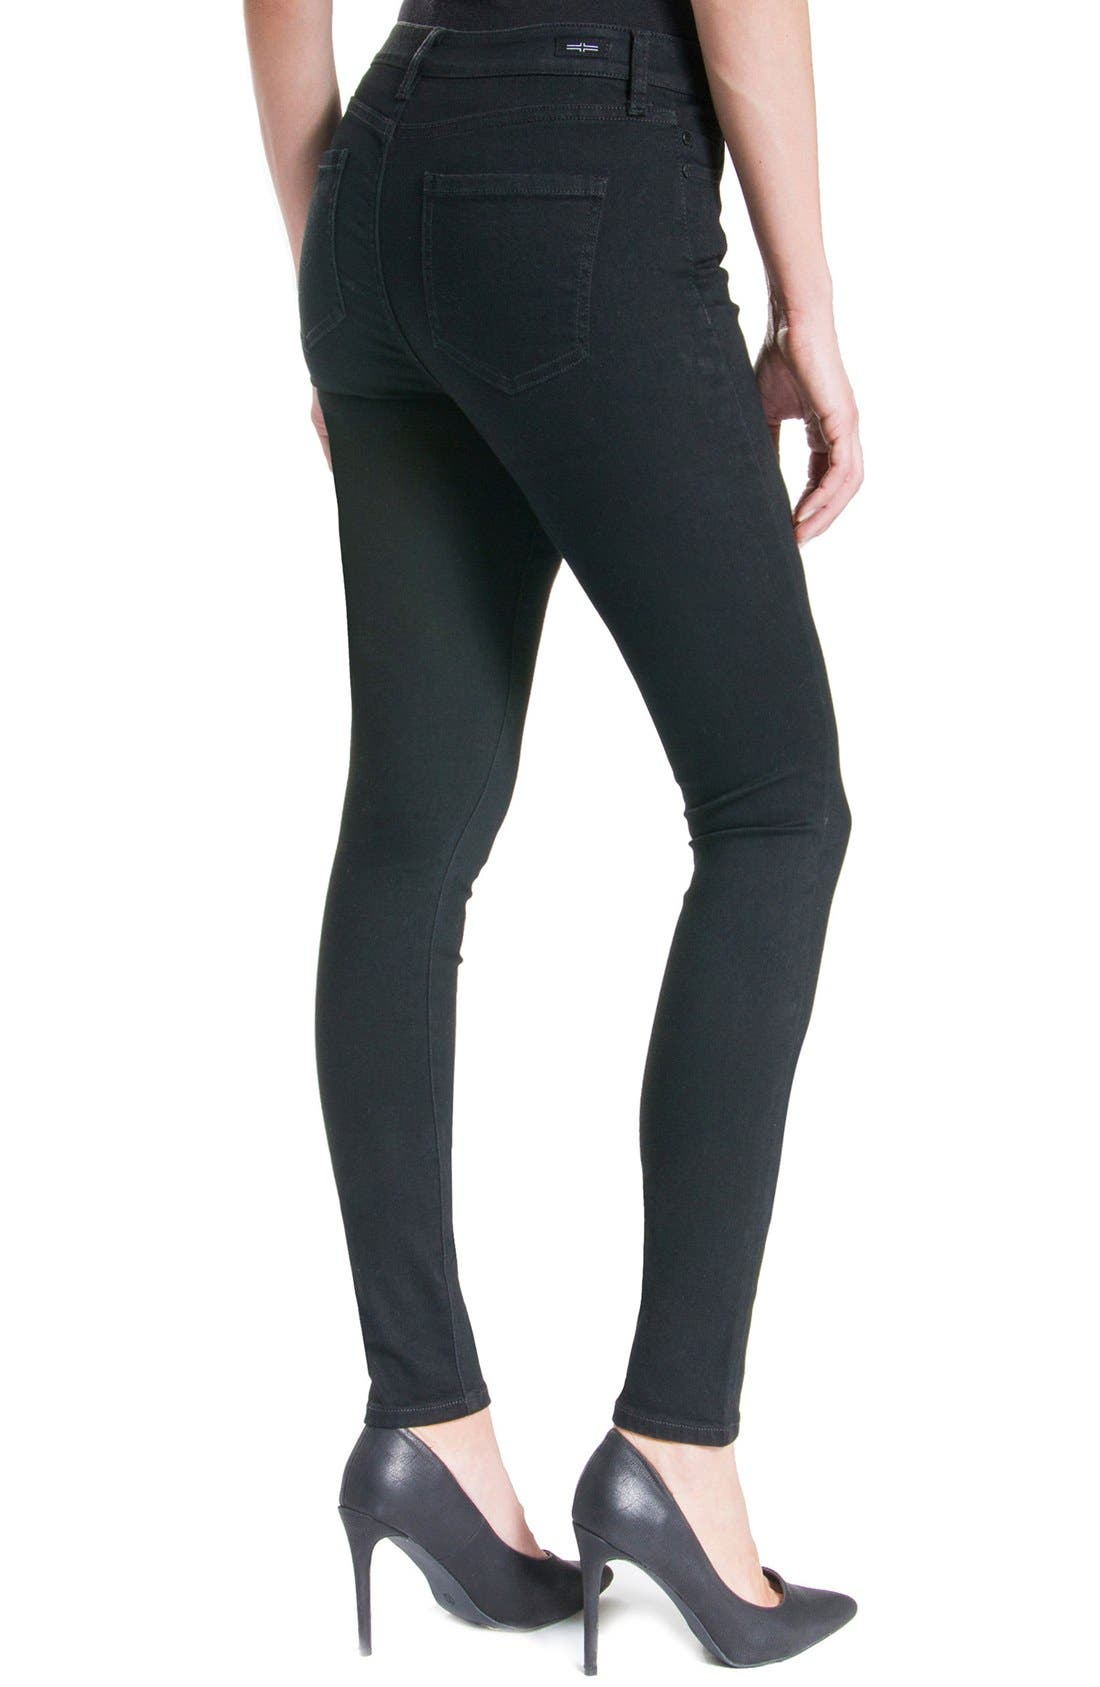 Jeans Company Abby Mid Rise Soft Stretch Skinny Jeans,                             Alternate thumbnail 5, color,                             BLACK RINSE